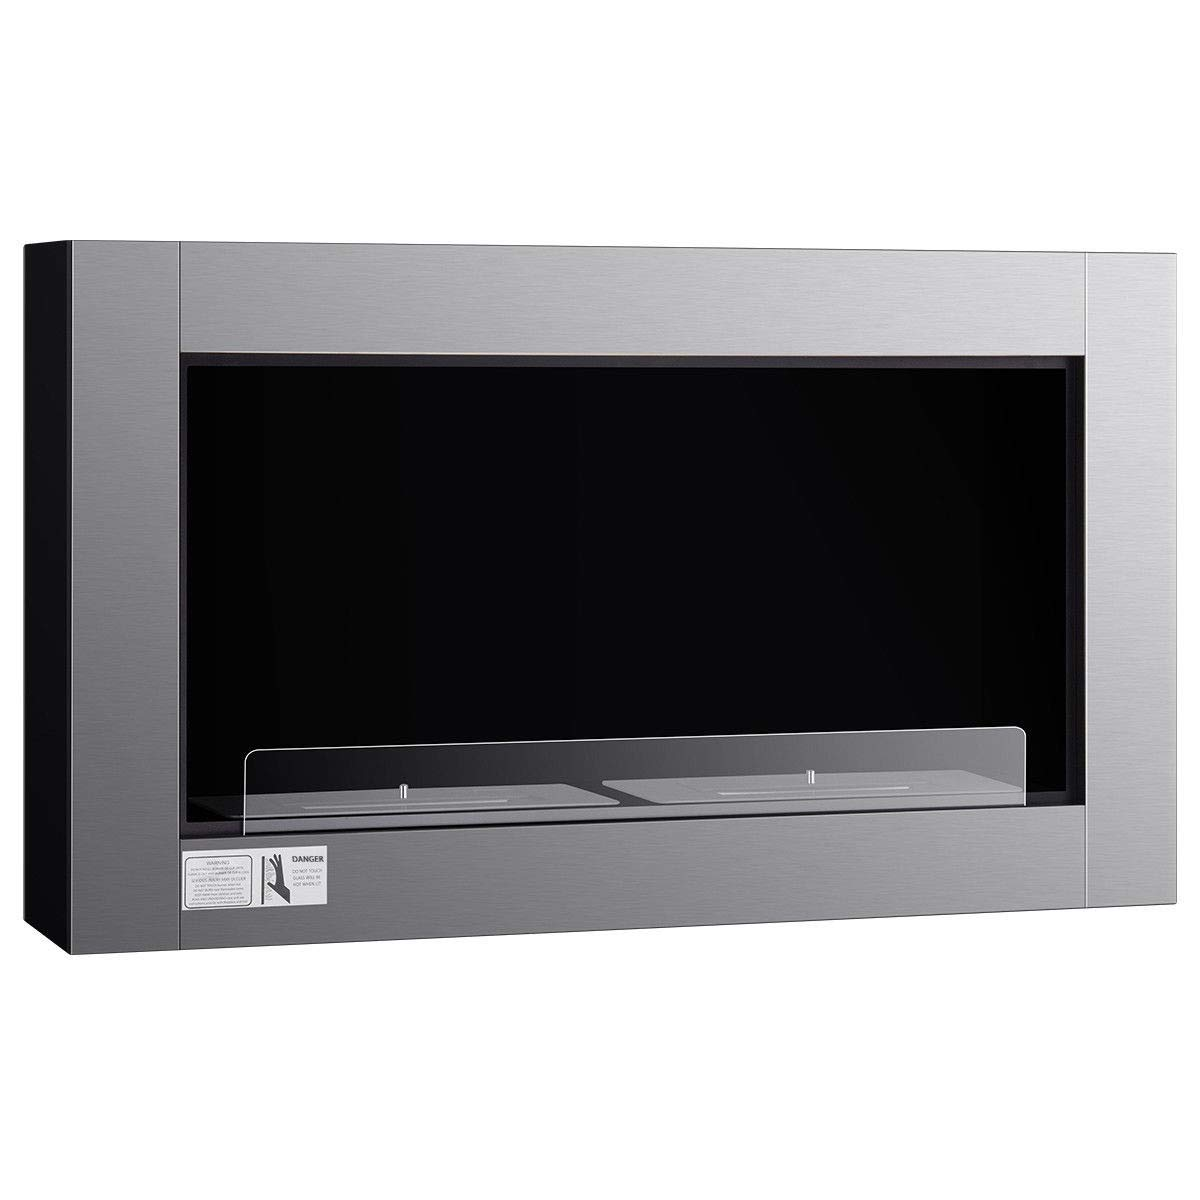 NanaPluz 38'' Sliver Wall Mounted Dual Burner Bio-Ethanol Ventless Fireplace with Ebook by NanaPluz